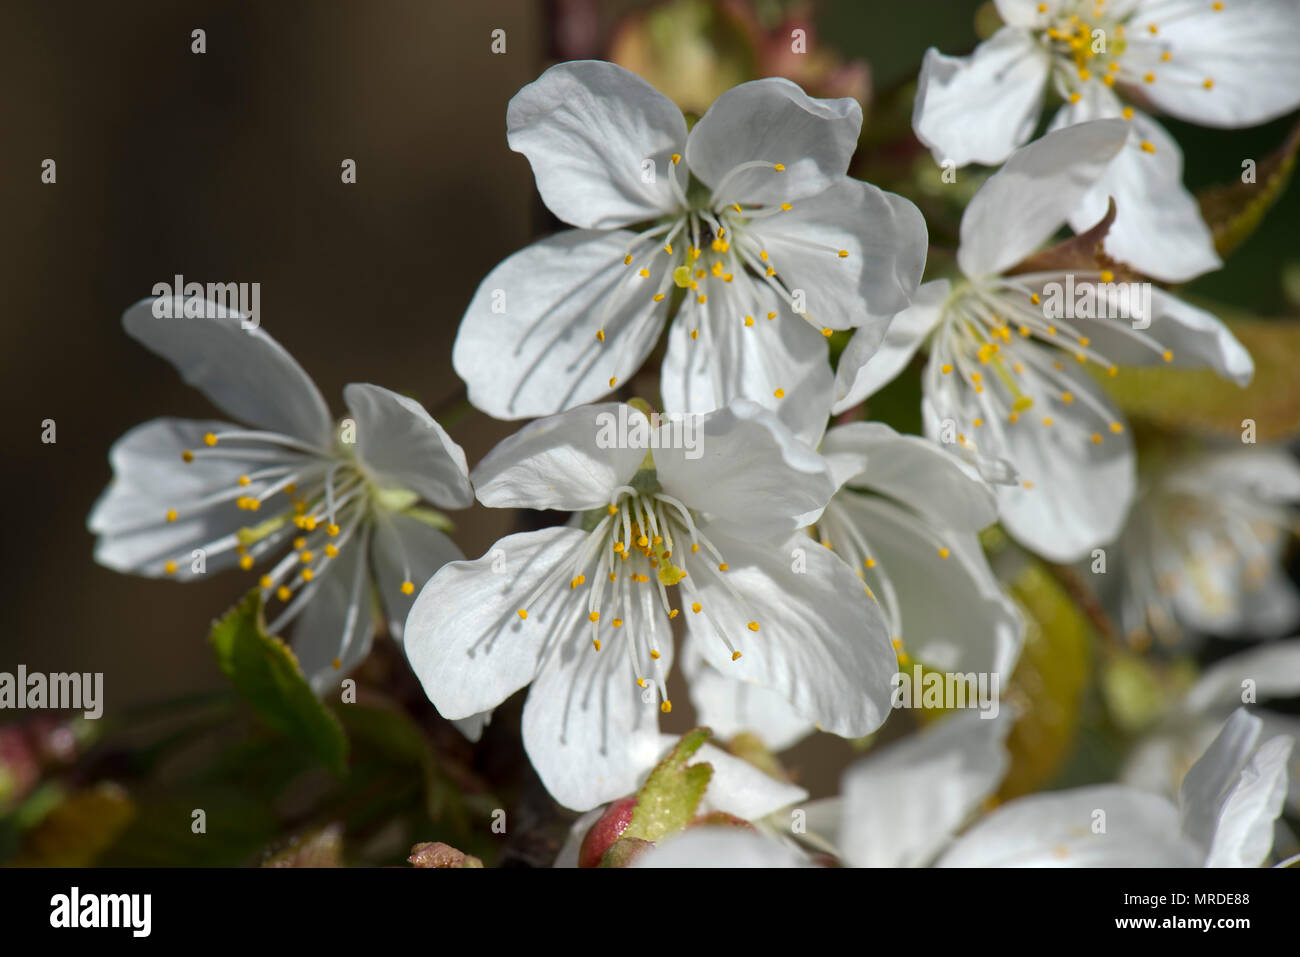 White, fully open flowers on a plum tree with pollen bearing anthers on stamen casting shadows on  the petals, April Stock Photo